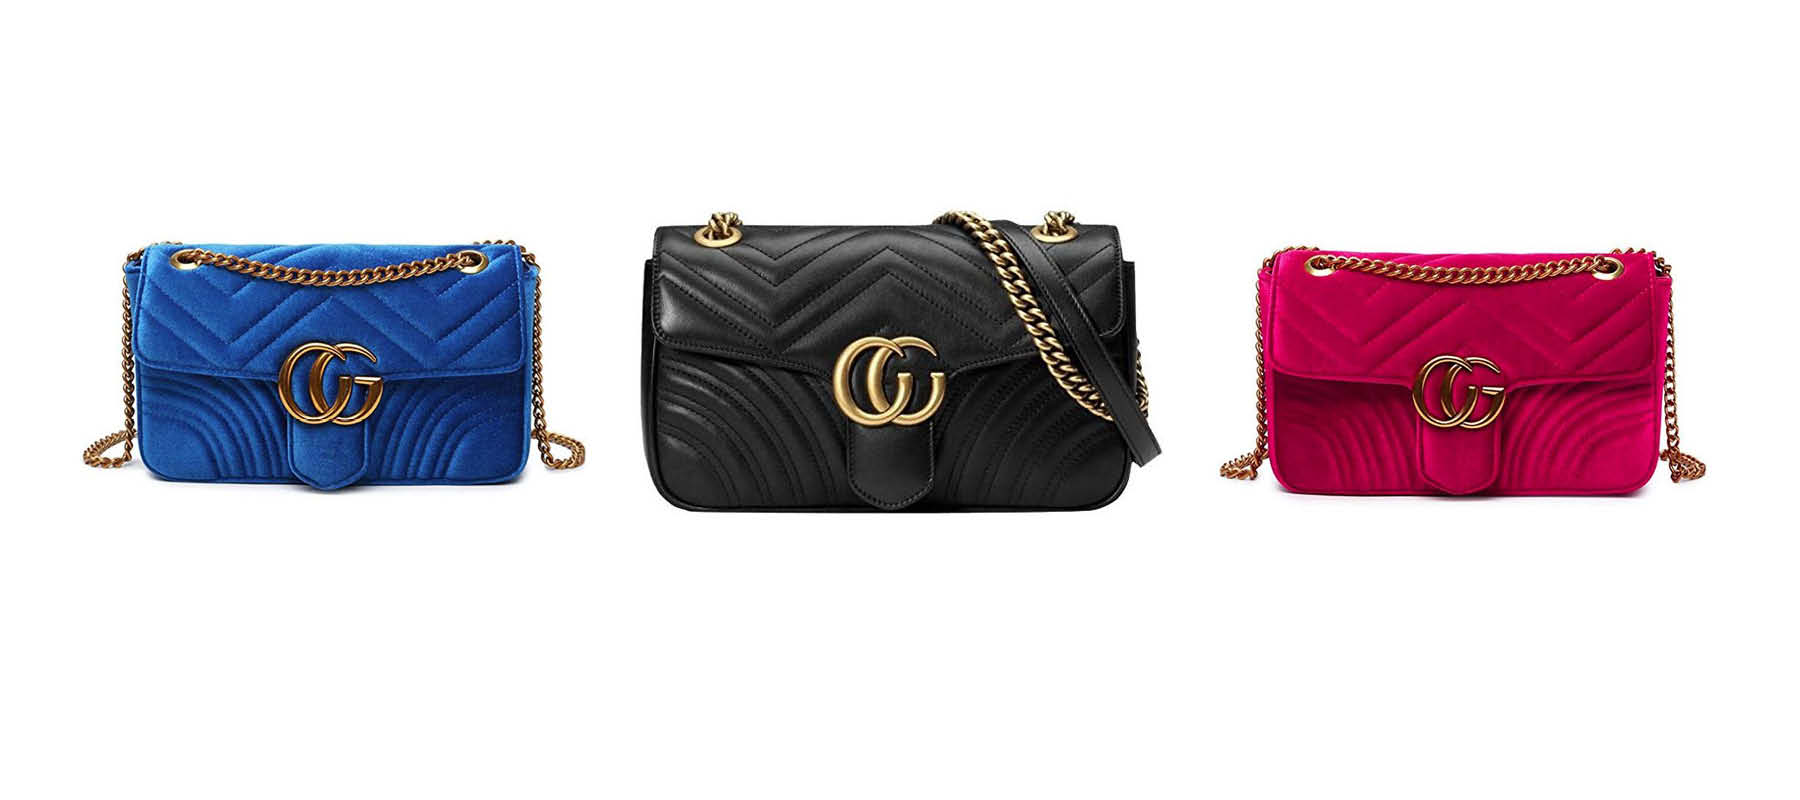 21a6ff708944 Gorgeous Gucci Marmont dupes on Amazon for less. Gucci Marmont dupe. Marmont  replica.